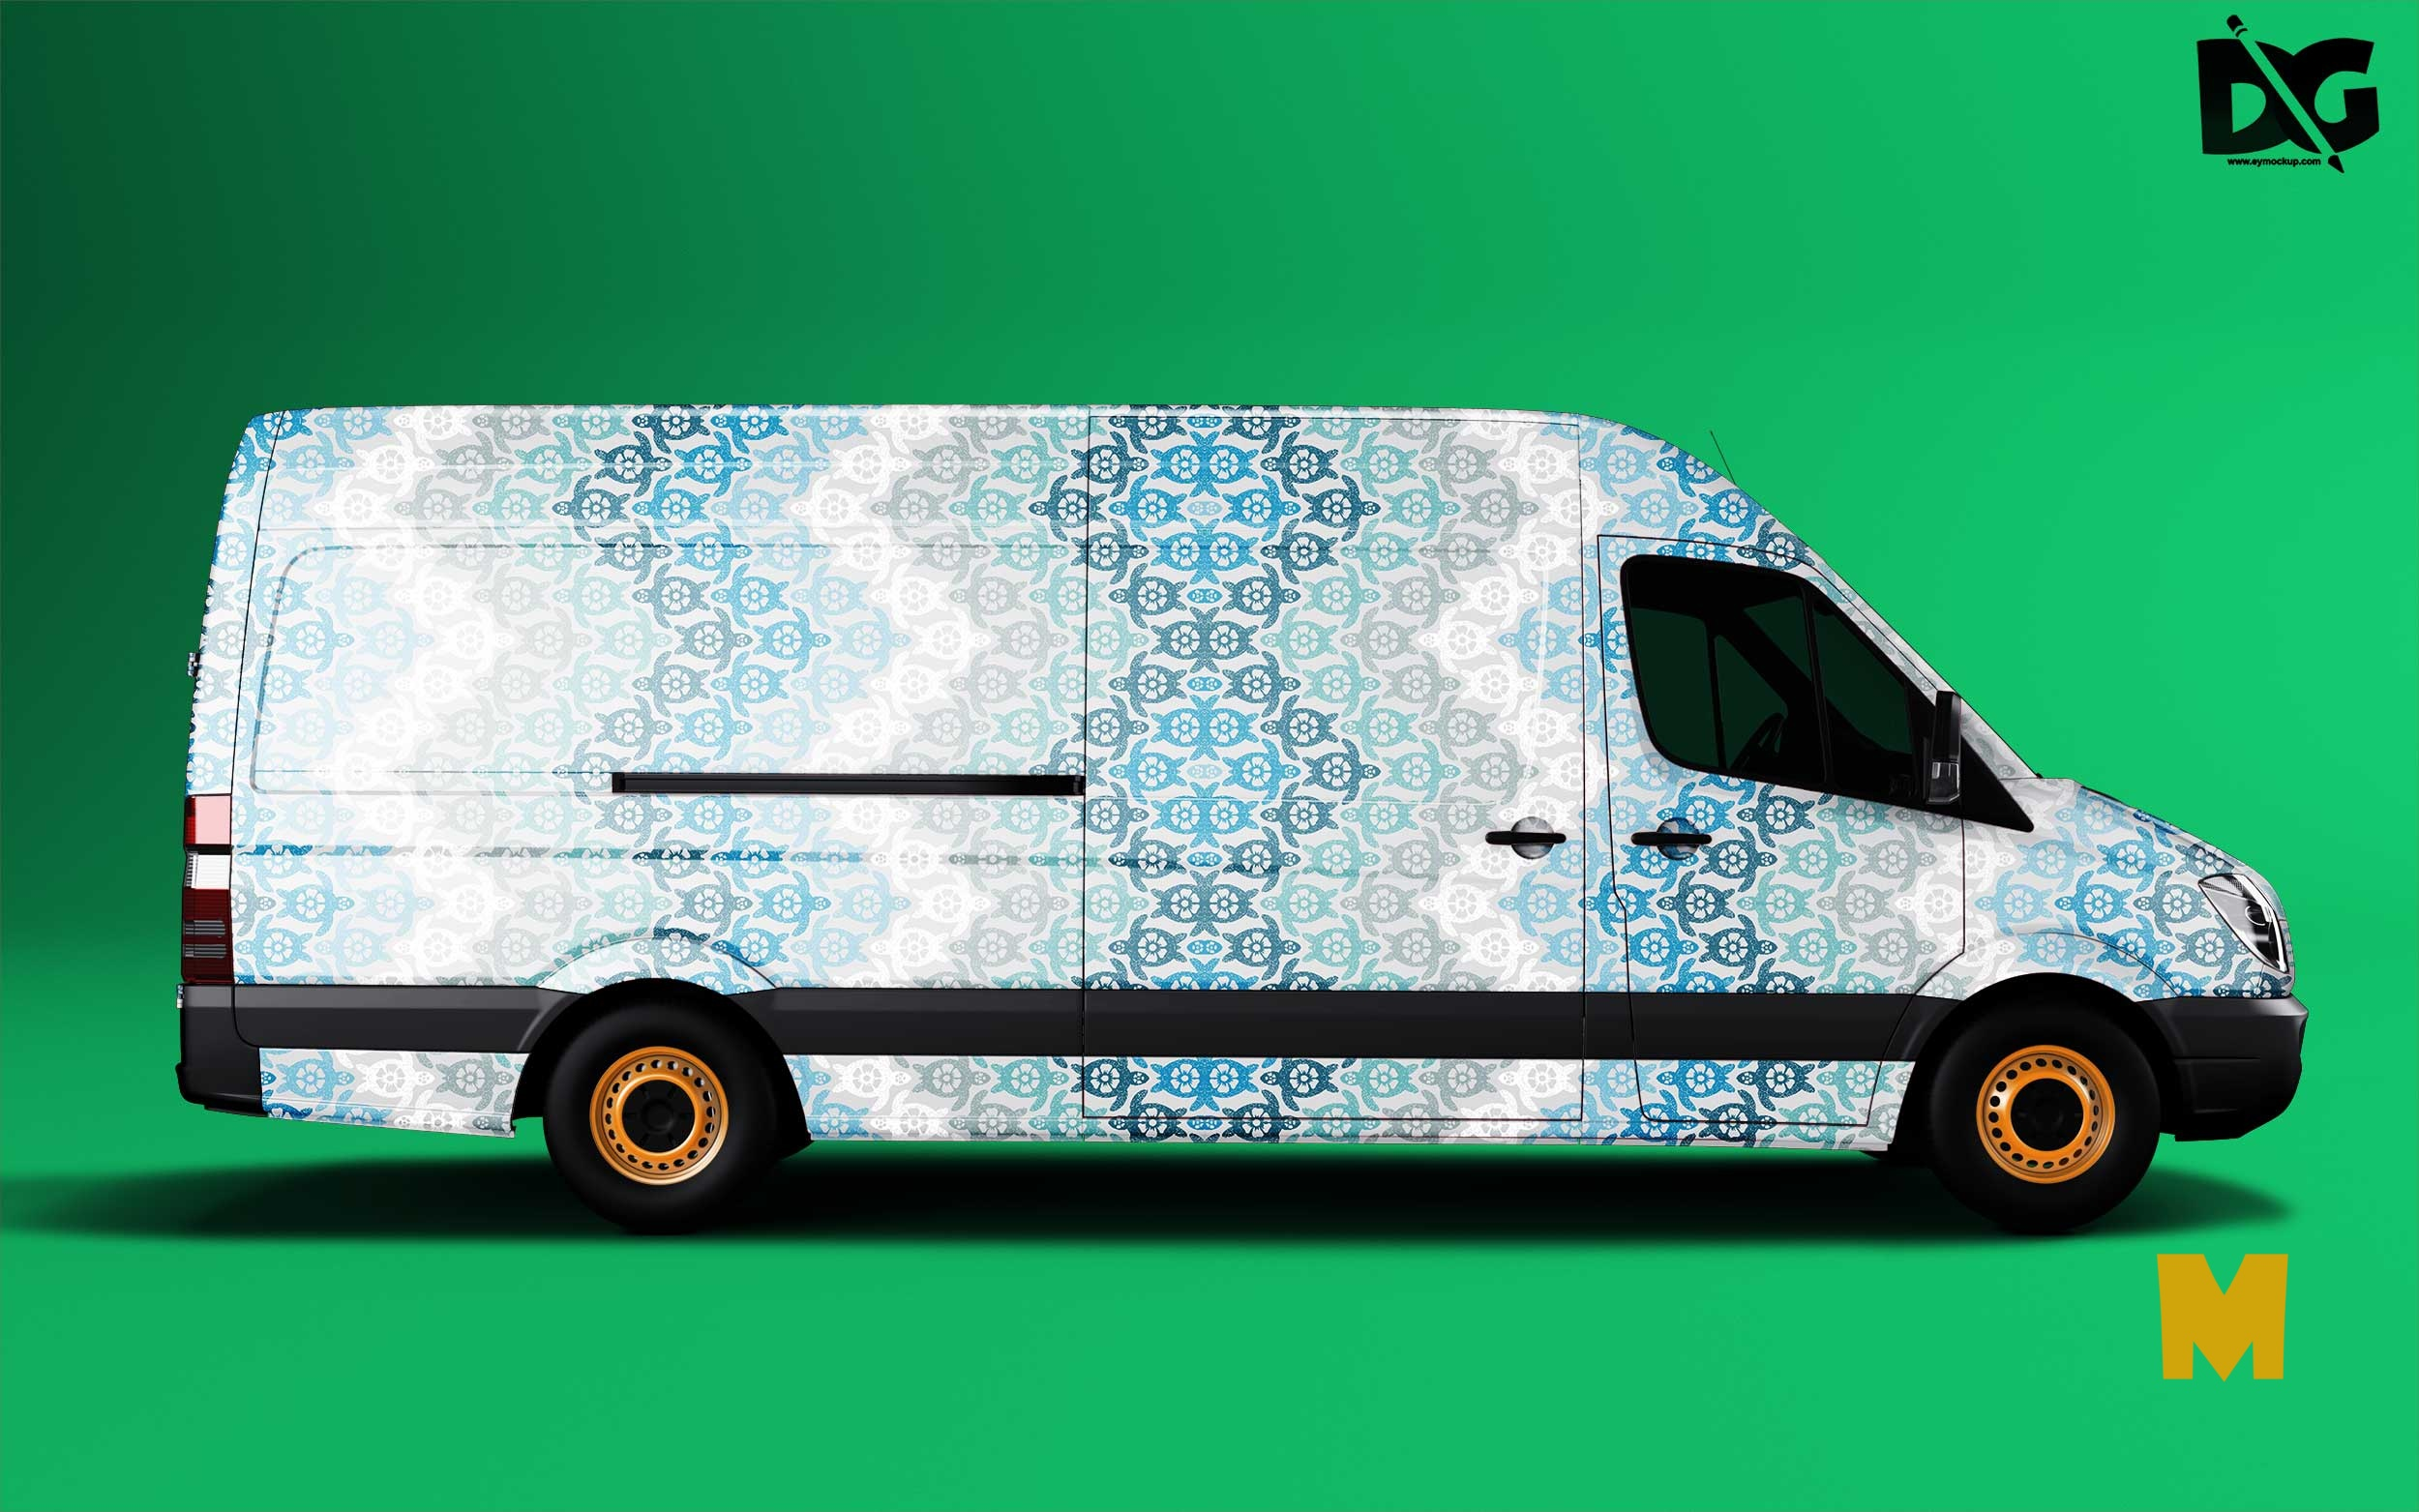 Free Mock-up Van Wrap mockup